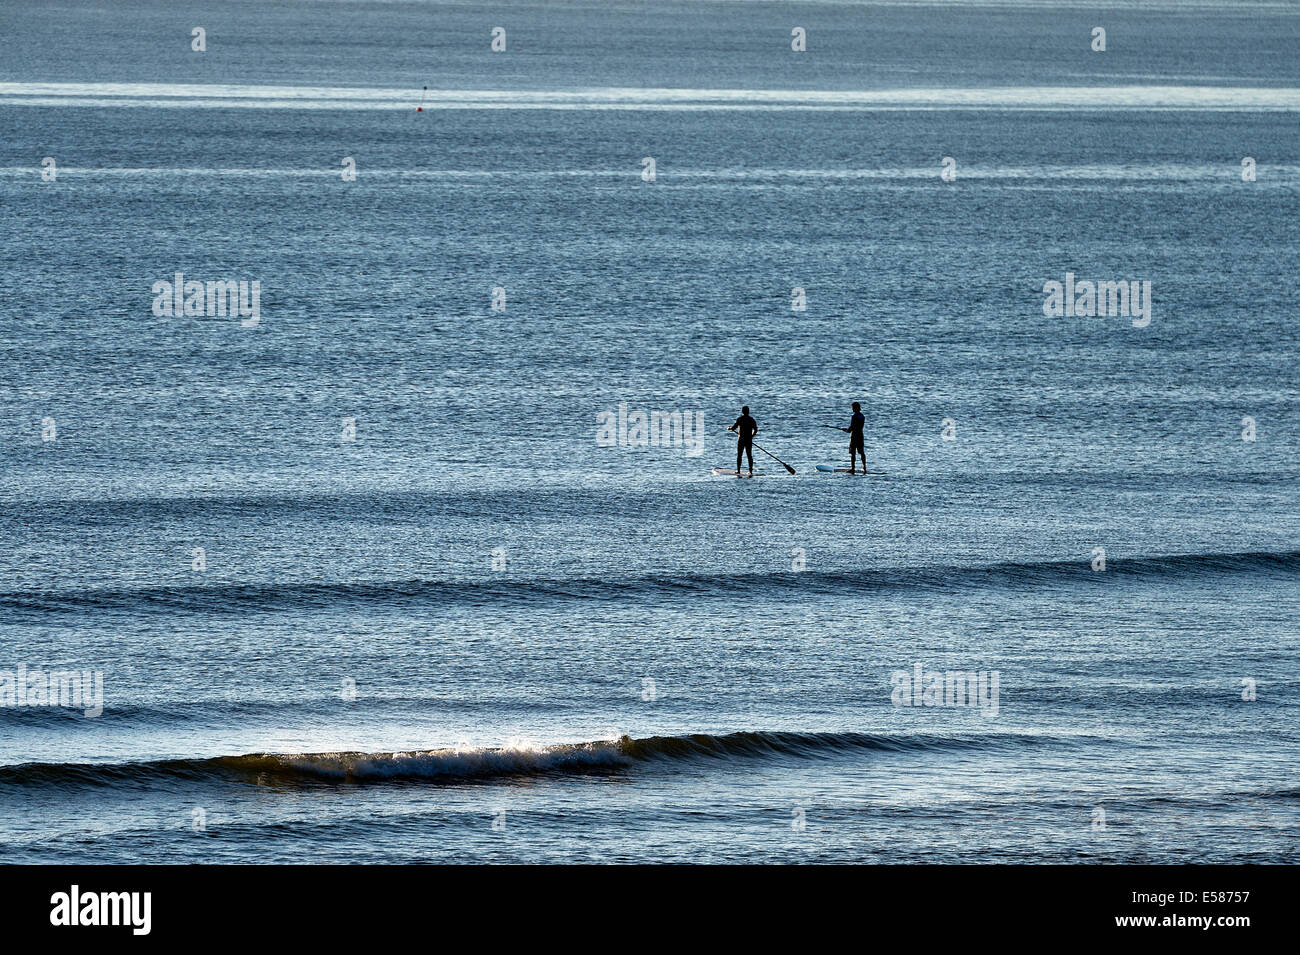 Paddle board surfers head out to catch a wave, Coast Guard Beach, Cape Cod, Massachusetts, USA - Stock Image